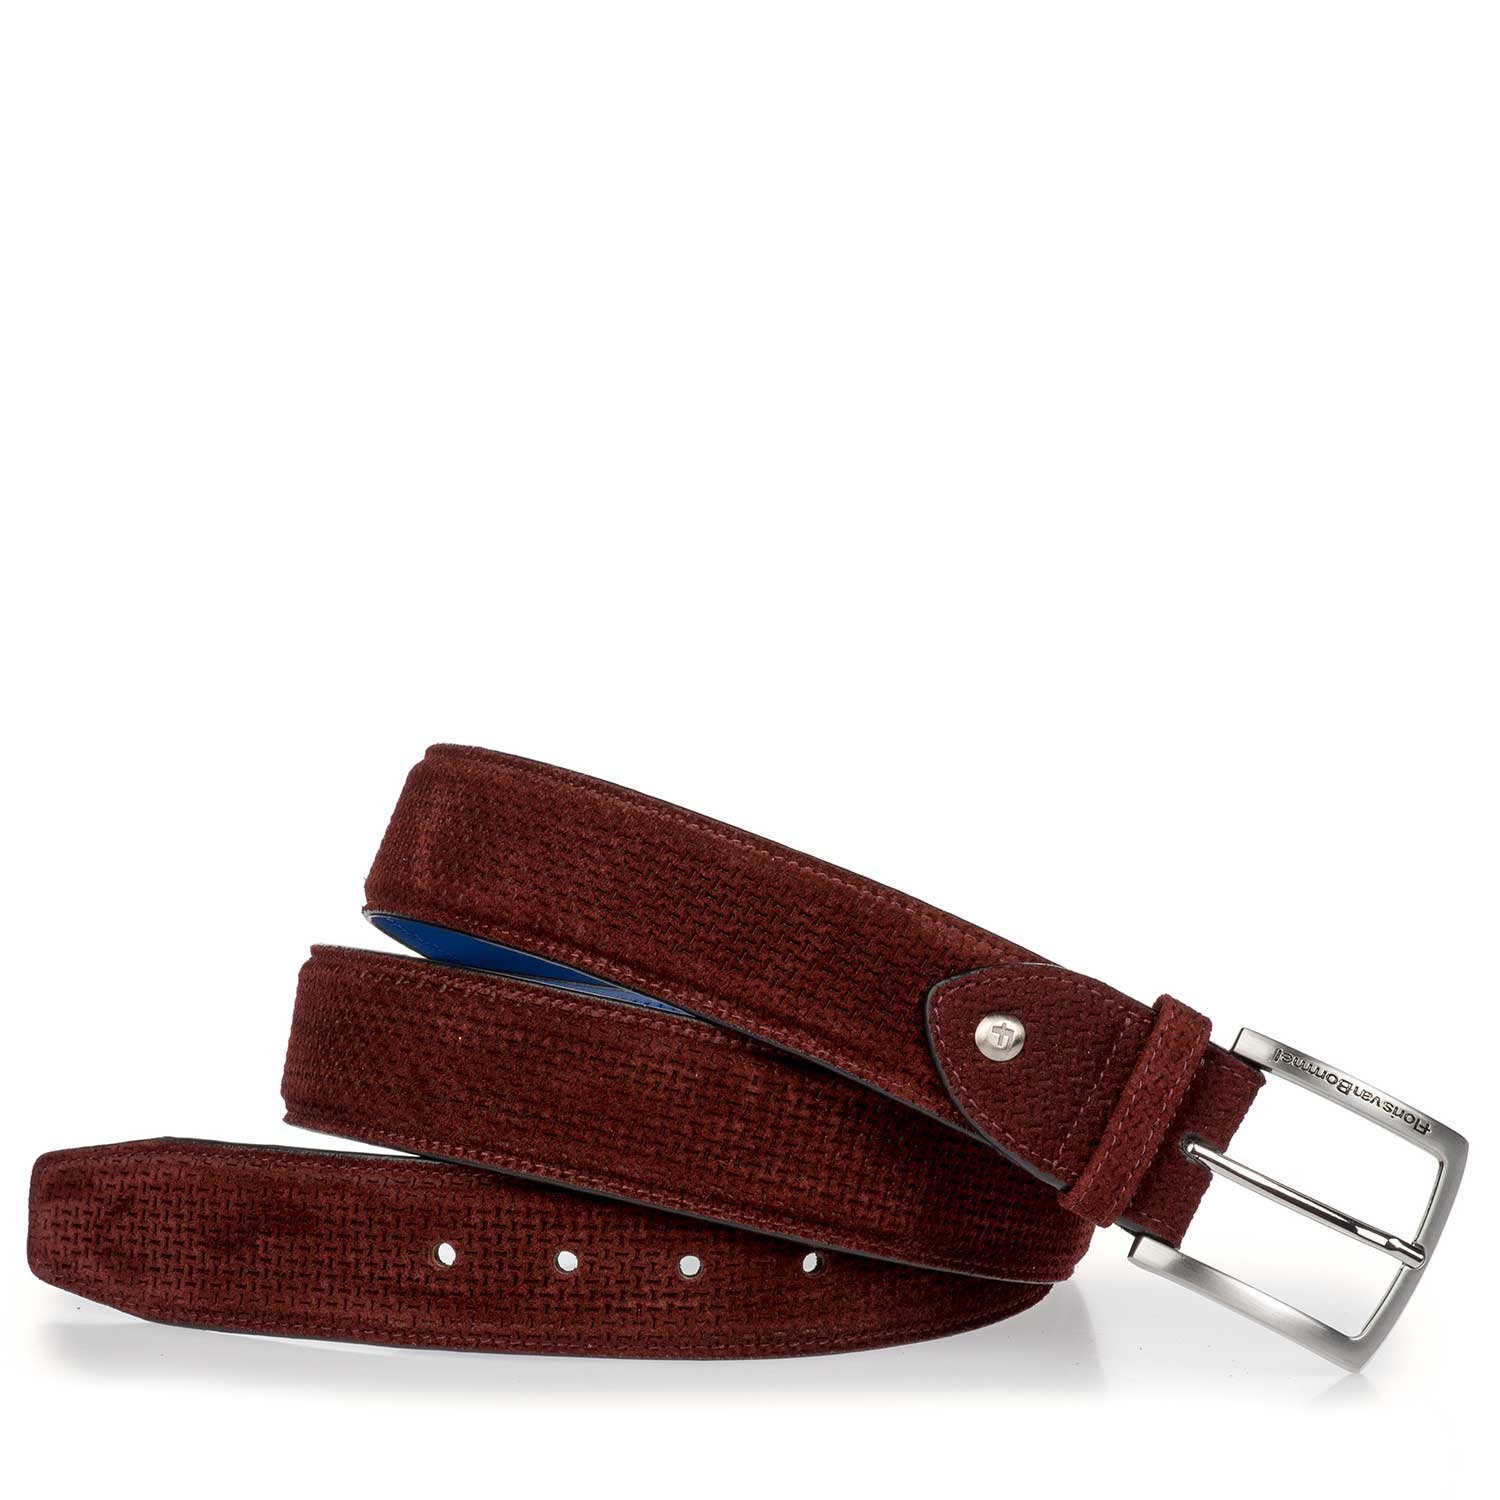 75189/20 - Burgundy red belt made of calf's suede leather